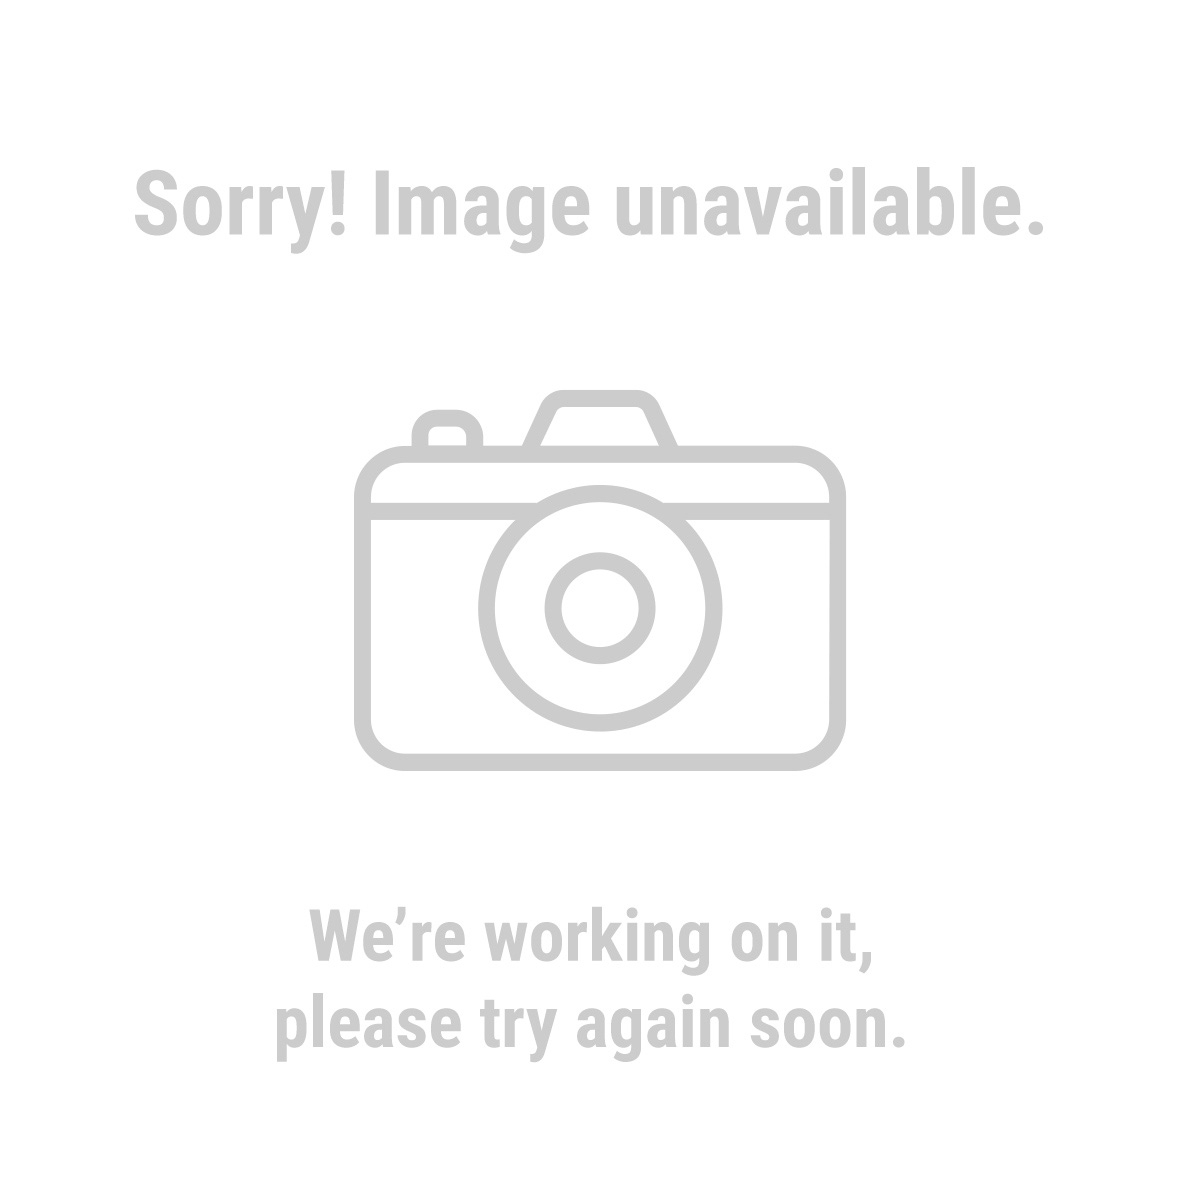 "69833 12"" x 9"" Auto For Sale Sign"